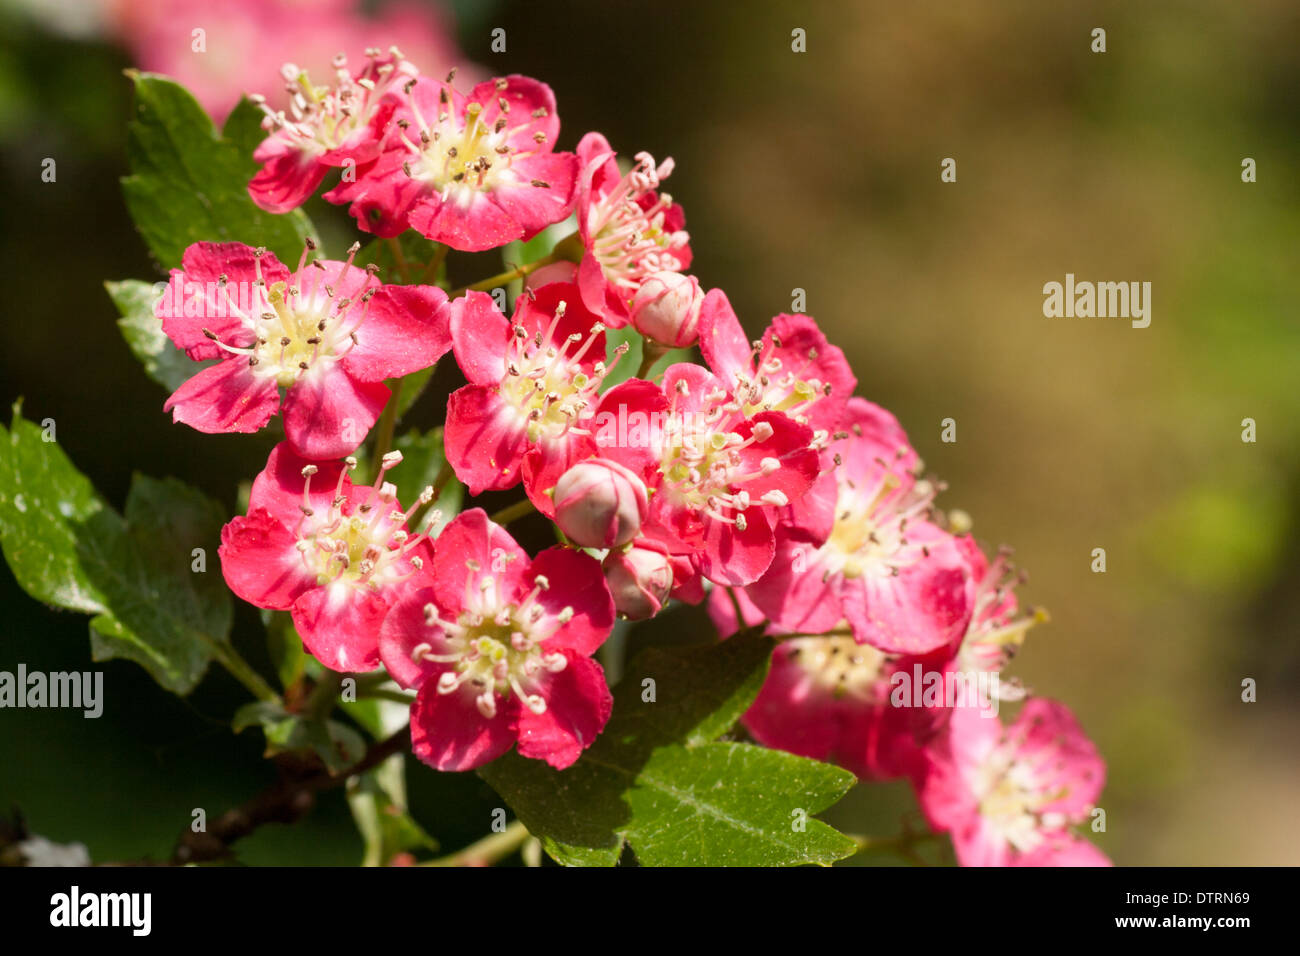 Flowers of the small spring flowering red hawthorn tree crataegus flowers of the small spring flowering red hawthorn tree crataegus laevigata crimson cloud mightylinksfo